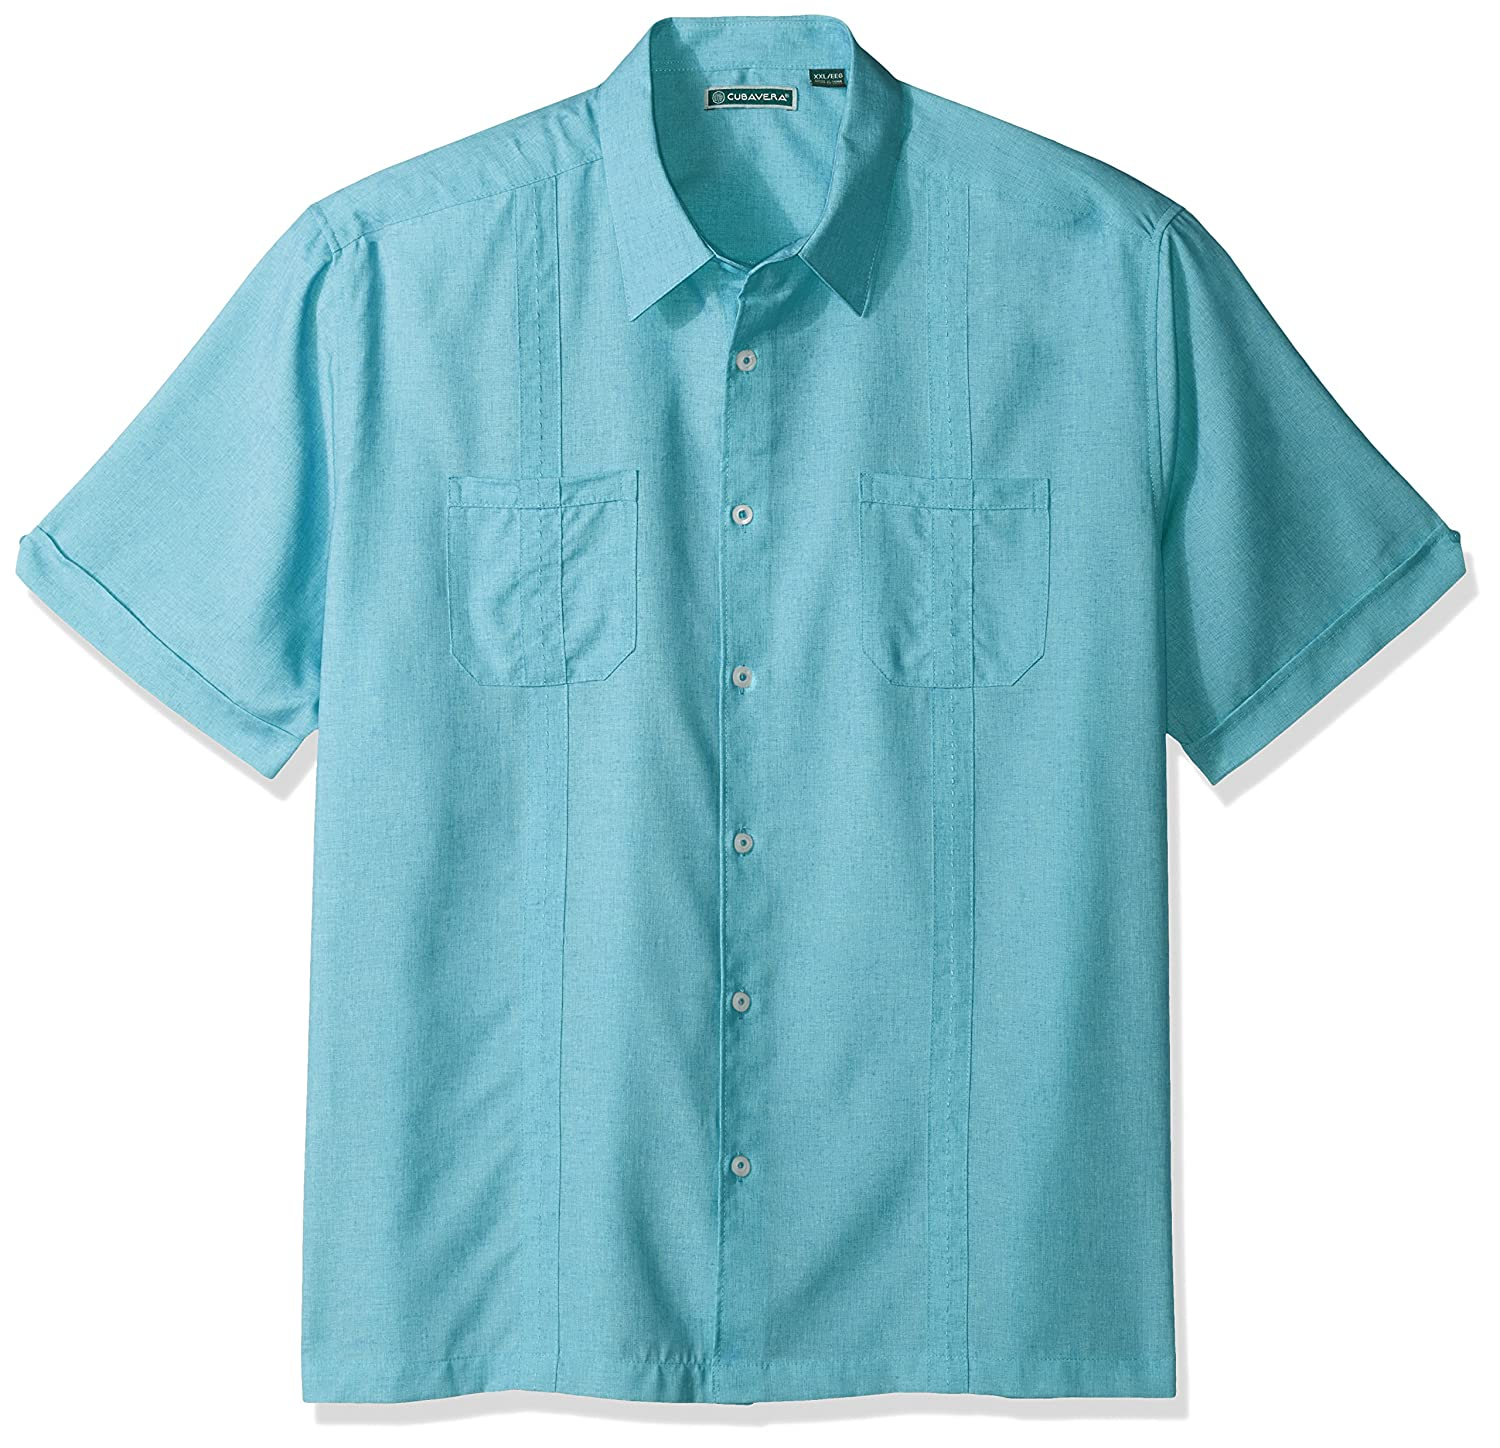 Cubavera Mens Short Sleeve Shirt with Contrast Front Yoke and Piping Detail CUWS7031